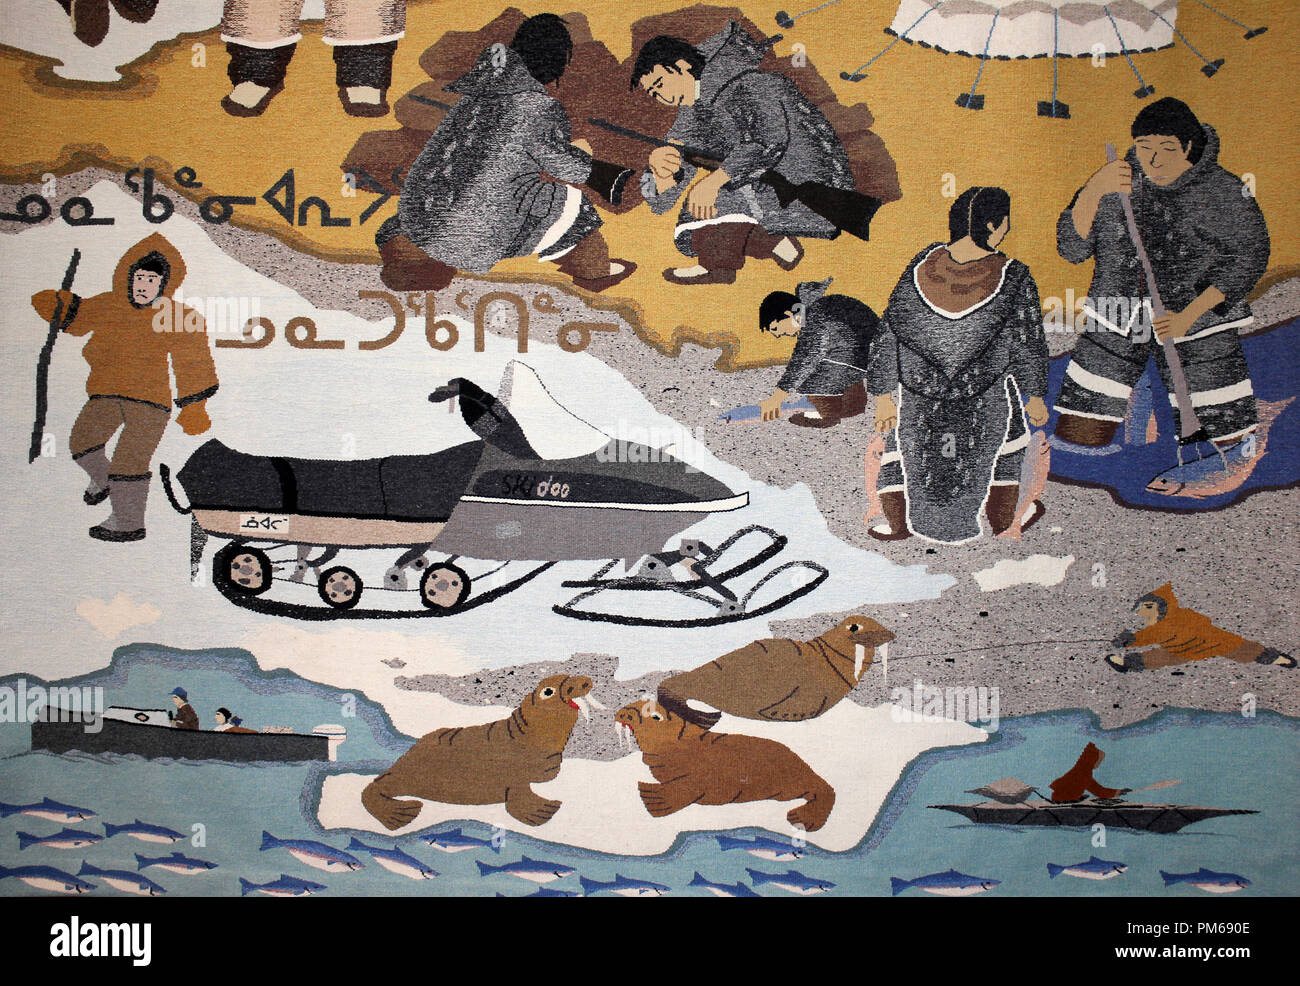 Tapestry Depicting Inuit Life including Hunting - Stock Image